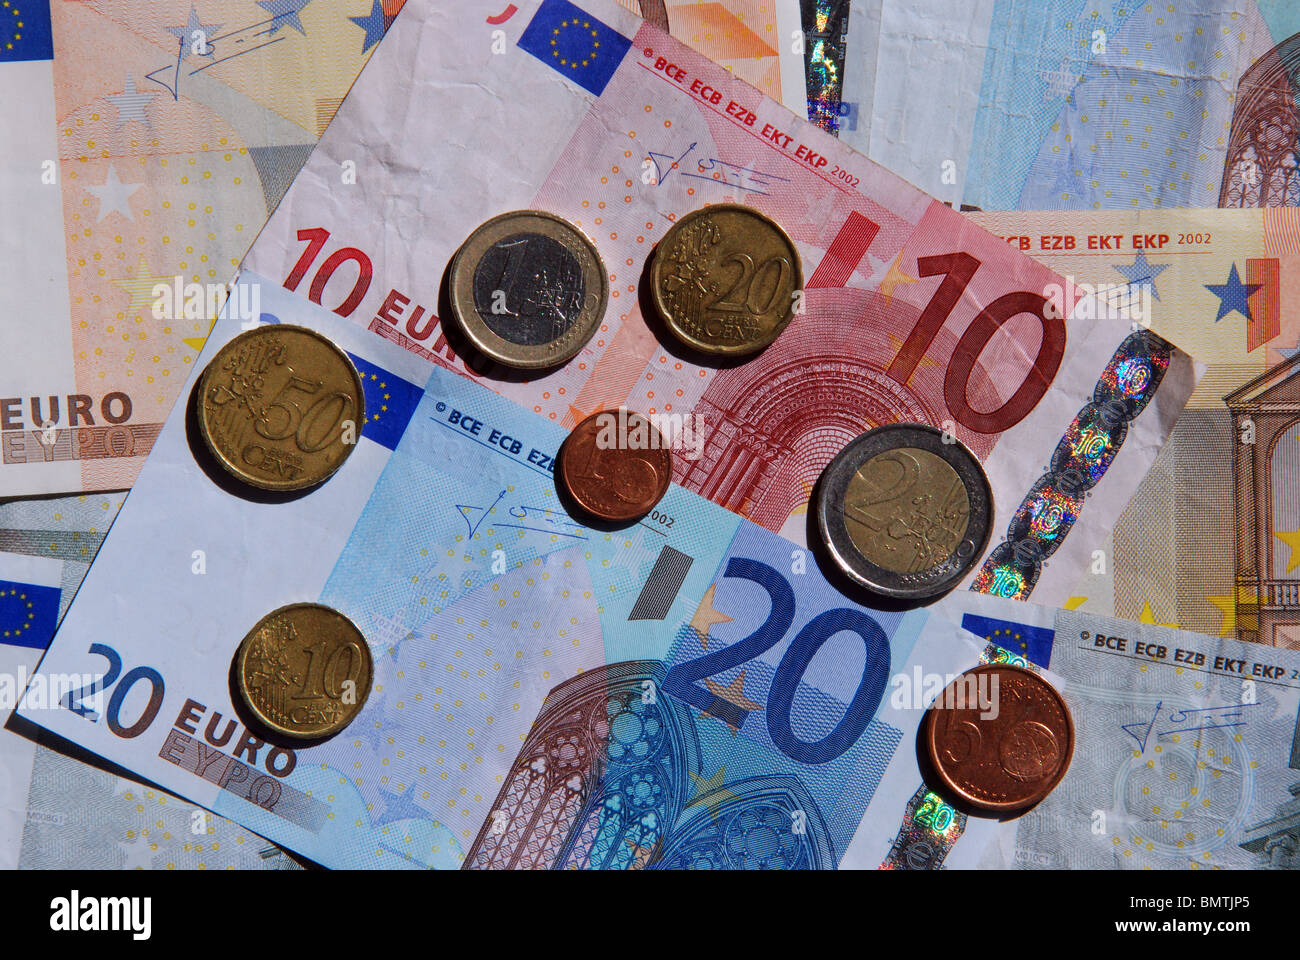 Euro coins and notes, Mijas Costa, Costa del Sol, Malaga Province